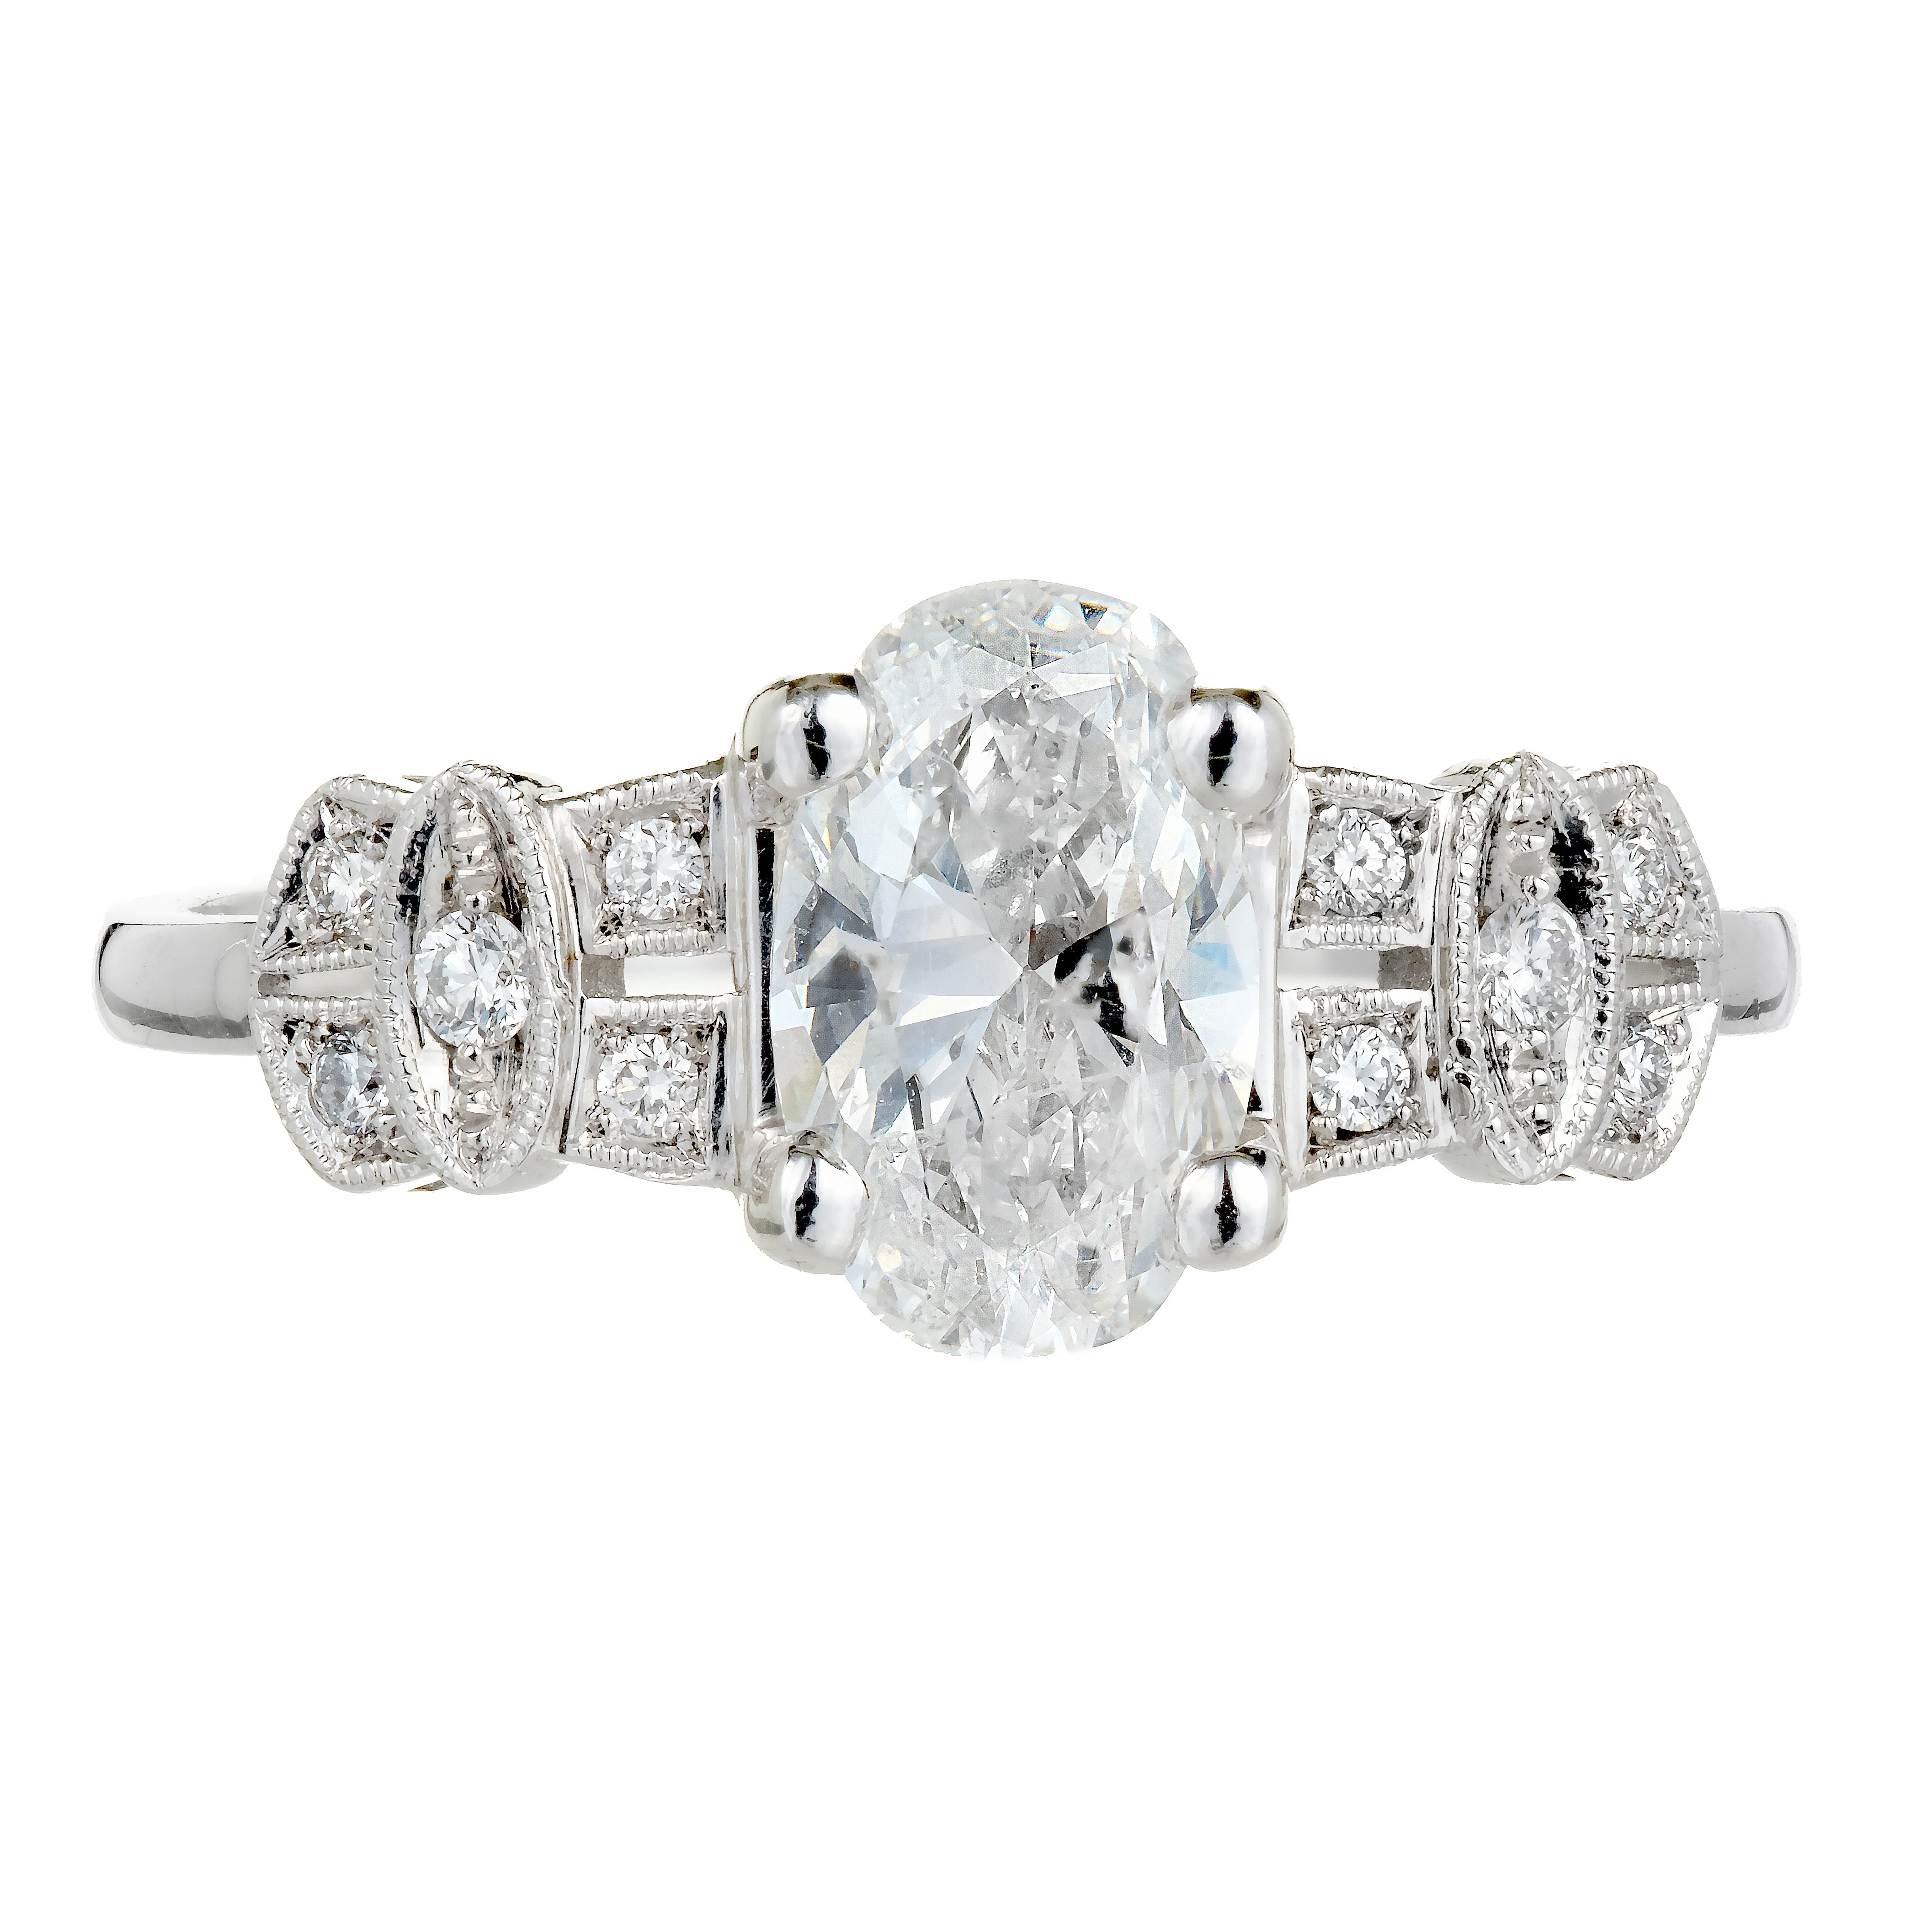 Peter Suchy GIA Certified 1.08 Carat Oval Diamond Platinum Engagement Ring